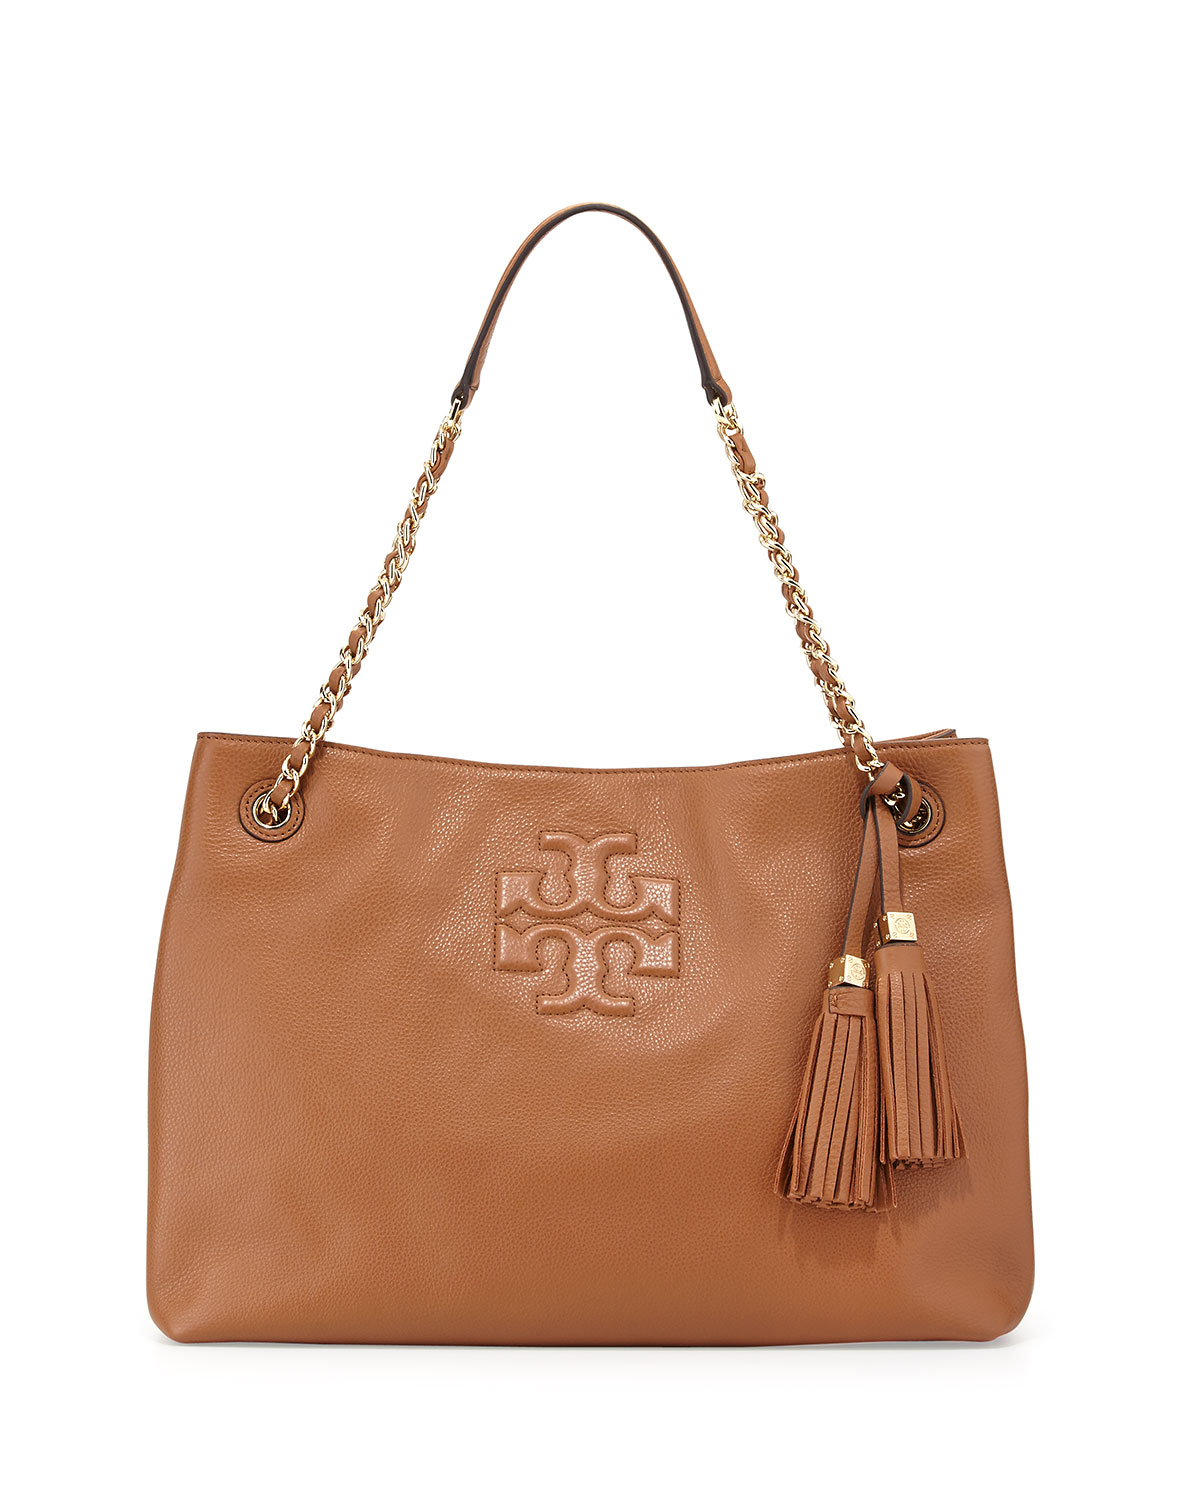 50c675e2a5fa7 Lyst - Tory Burch Thea Large Chain Tote Bag in Brown